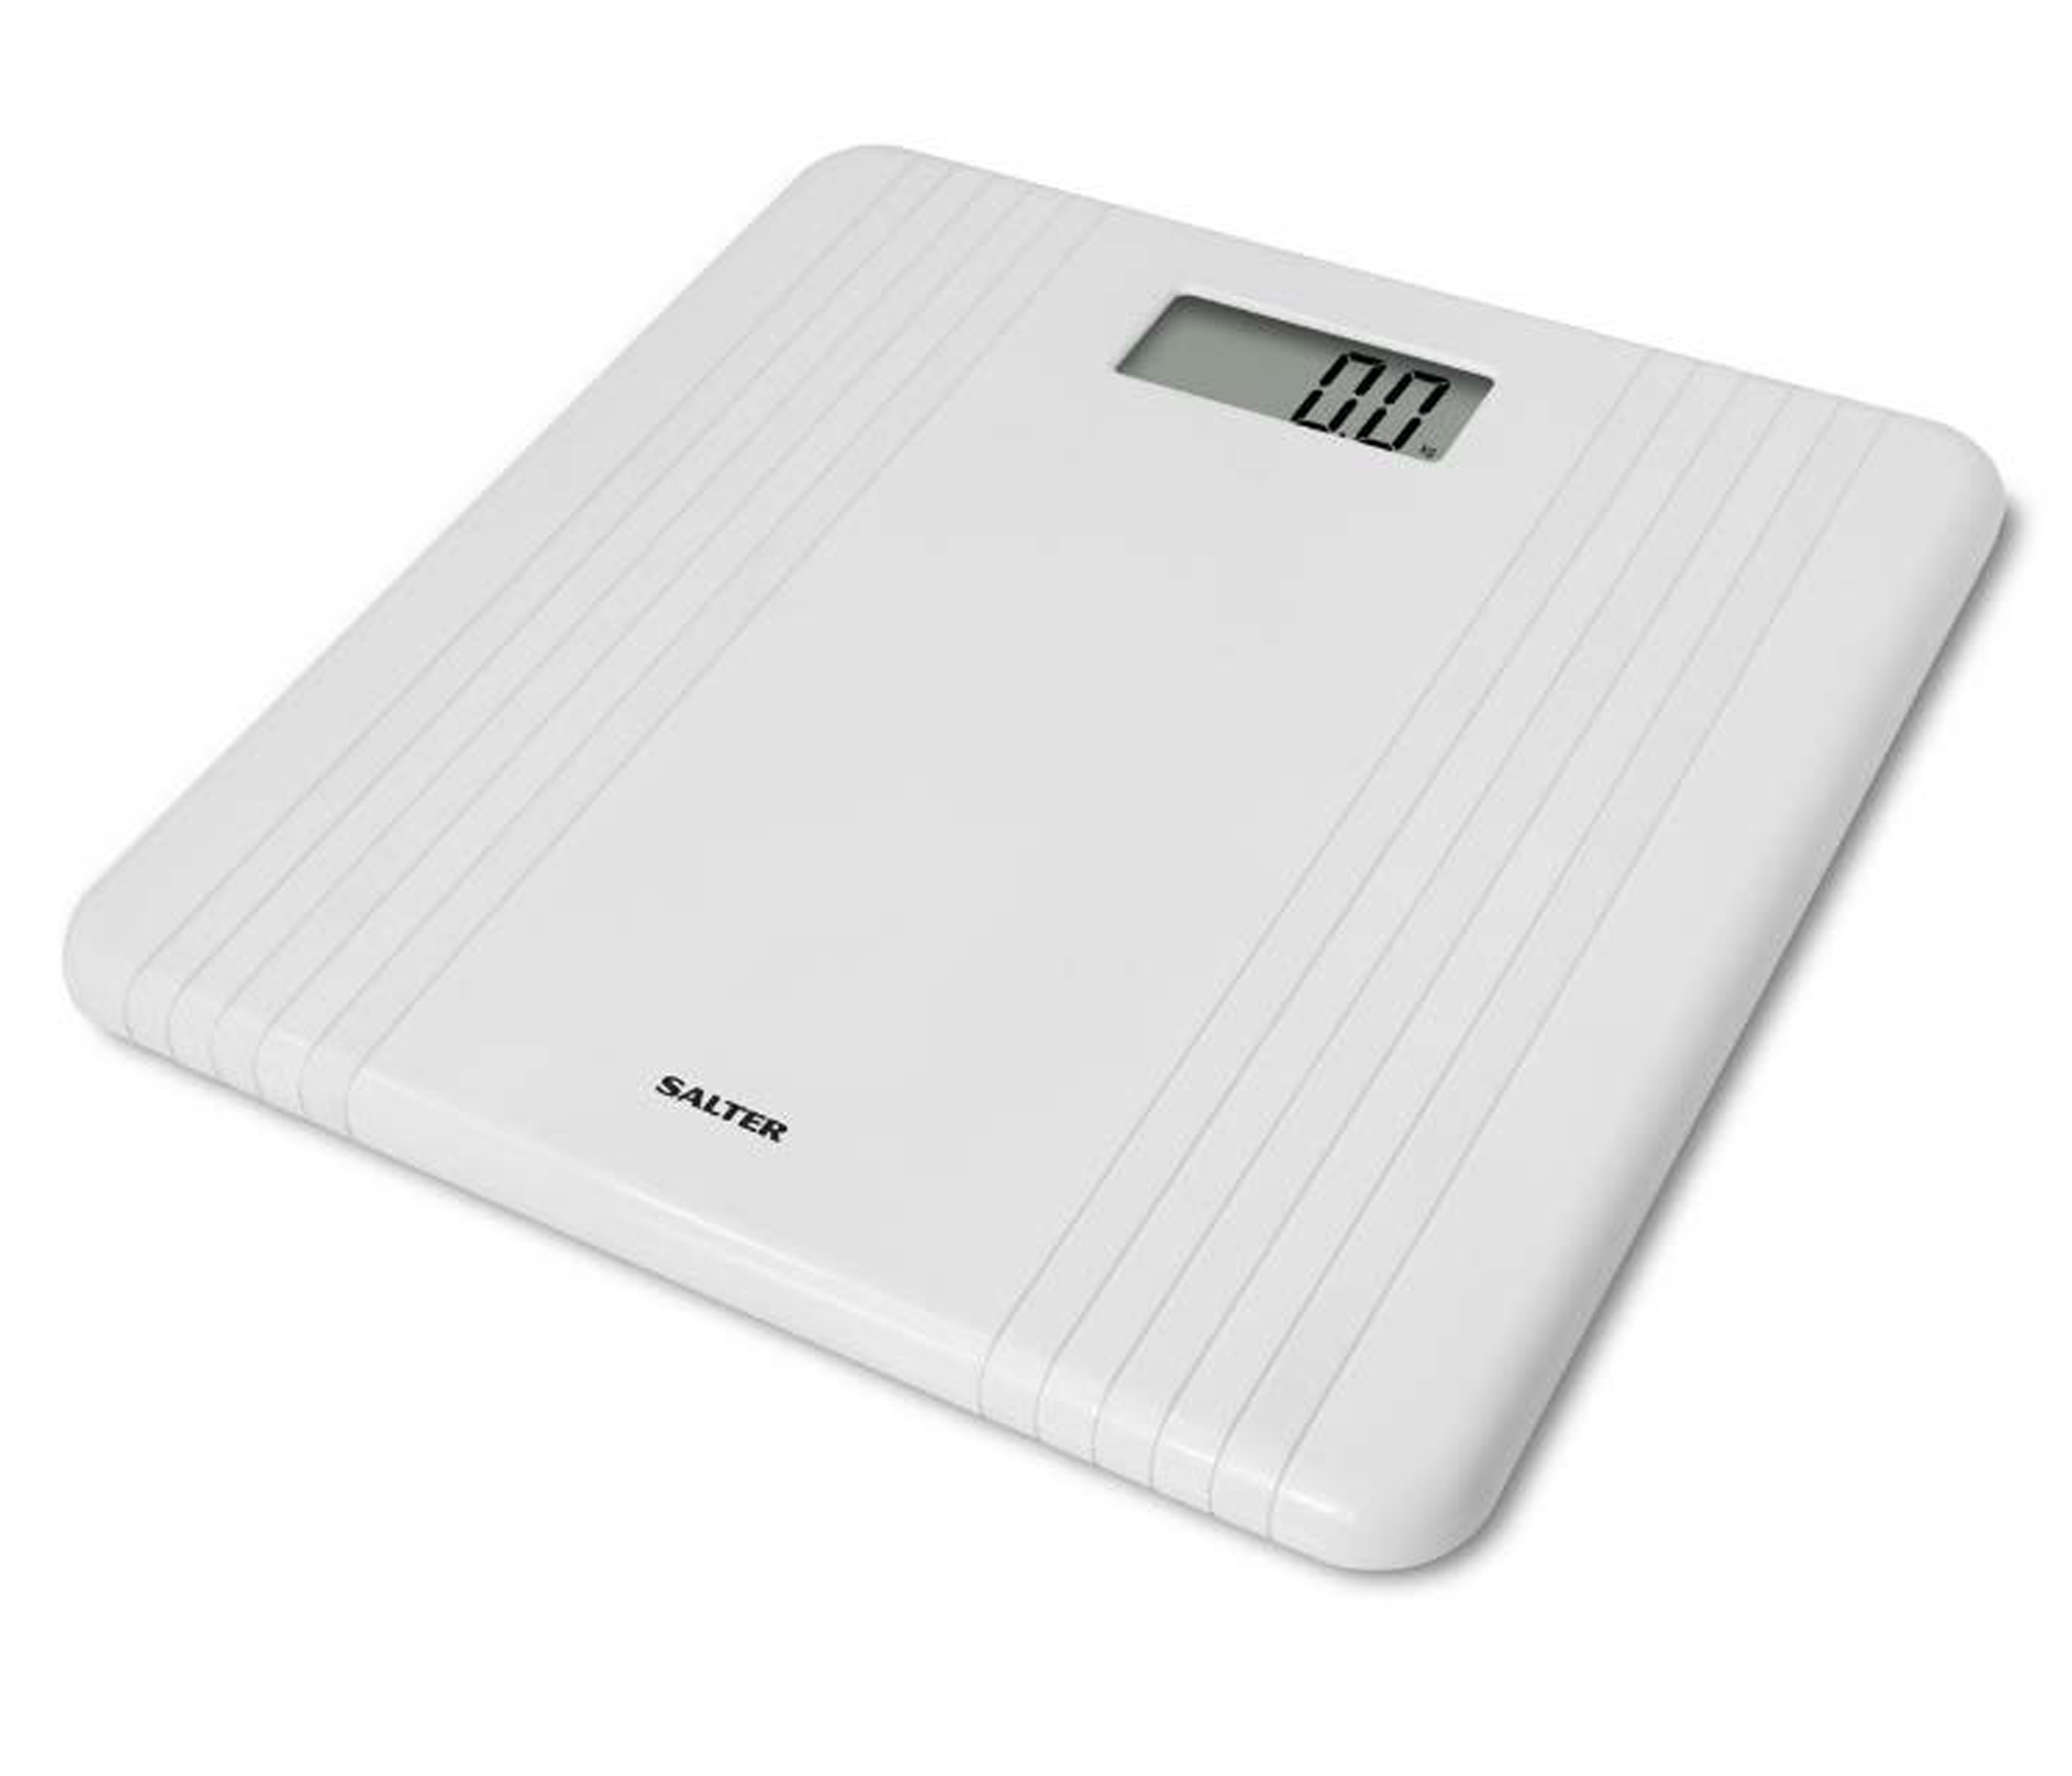 Salter 9083wh3t Digital Lcd Display Kitchen Scale Scales